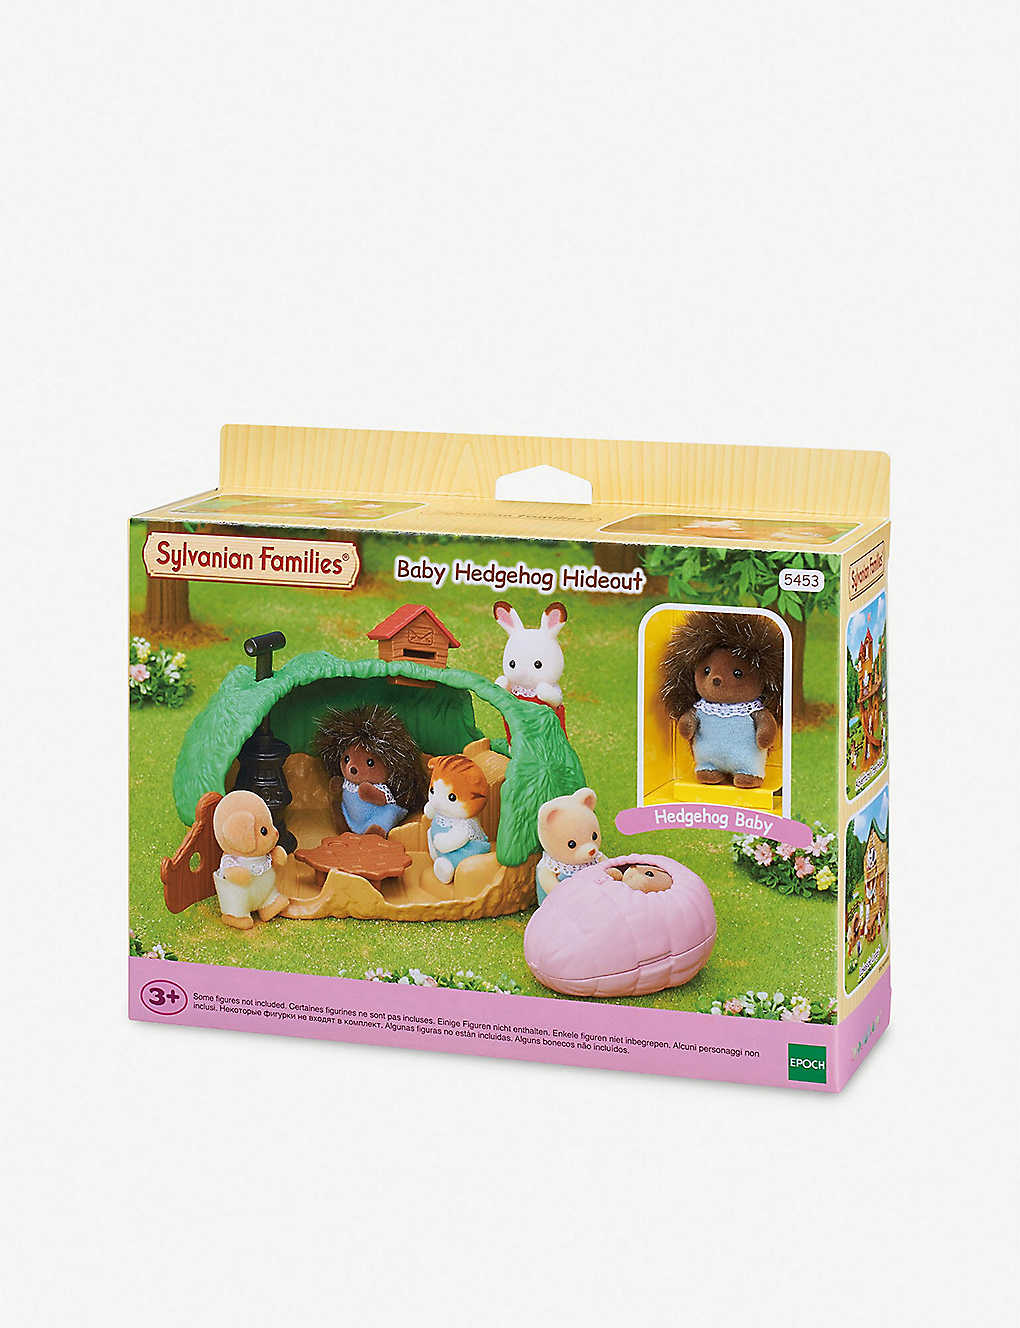 SYLVANIAN FAMILIES: Baby Hedgehog Hideout playset